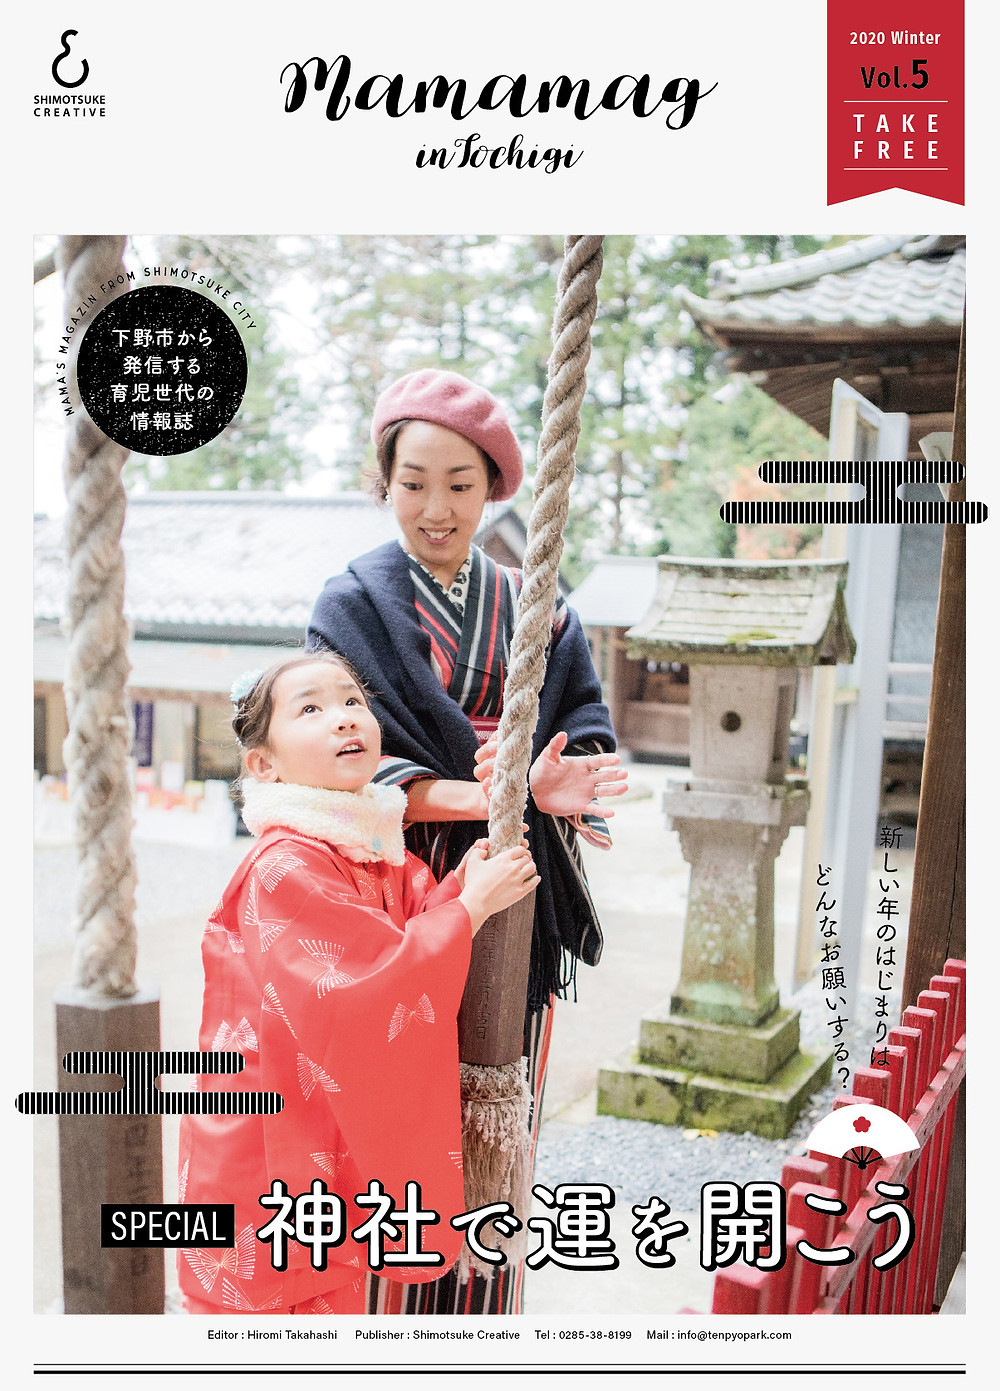 Mamamag in Tochigi Vol.5